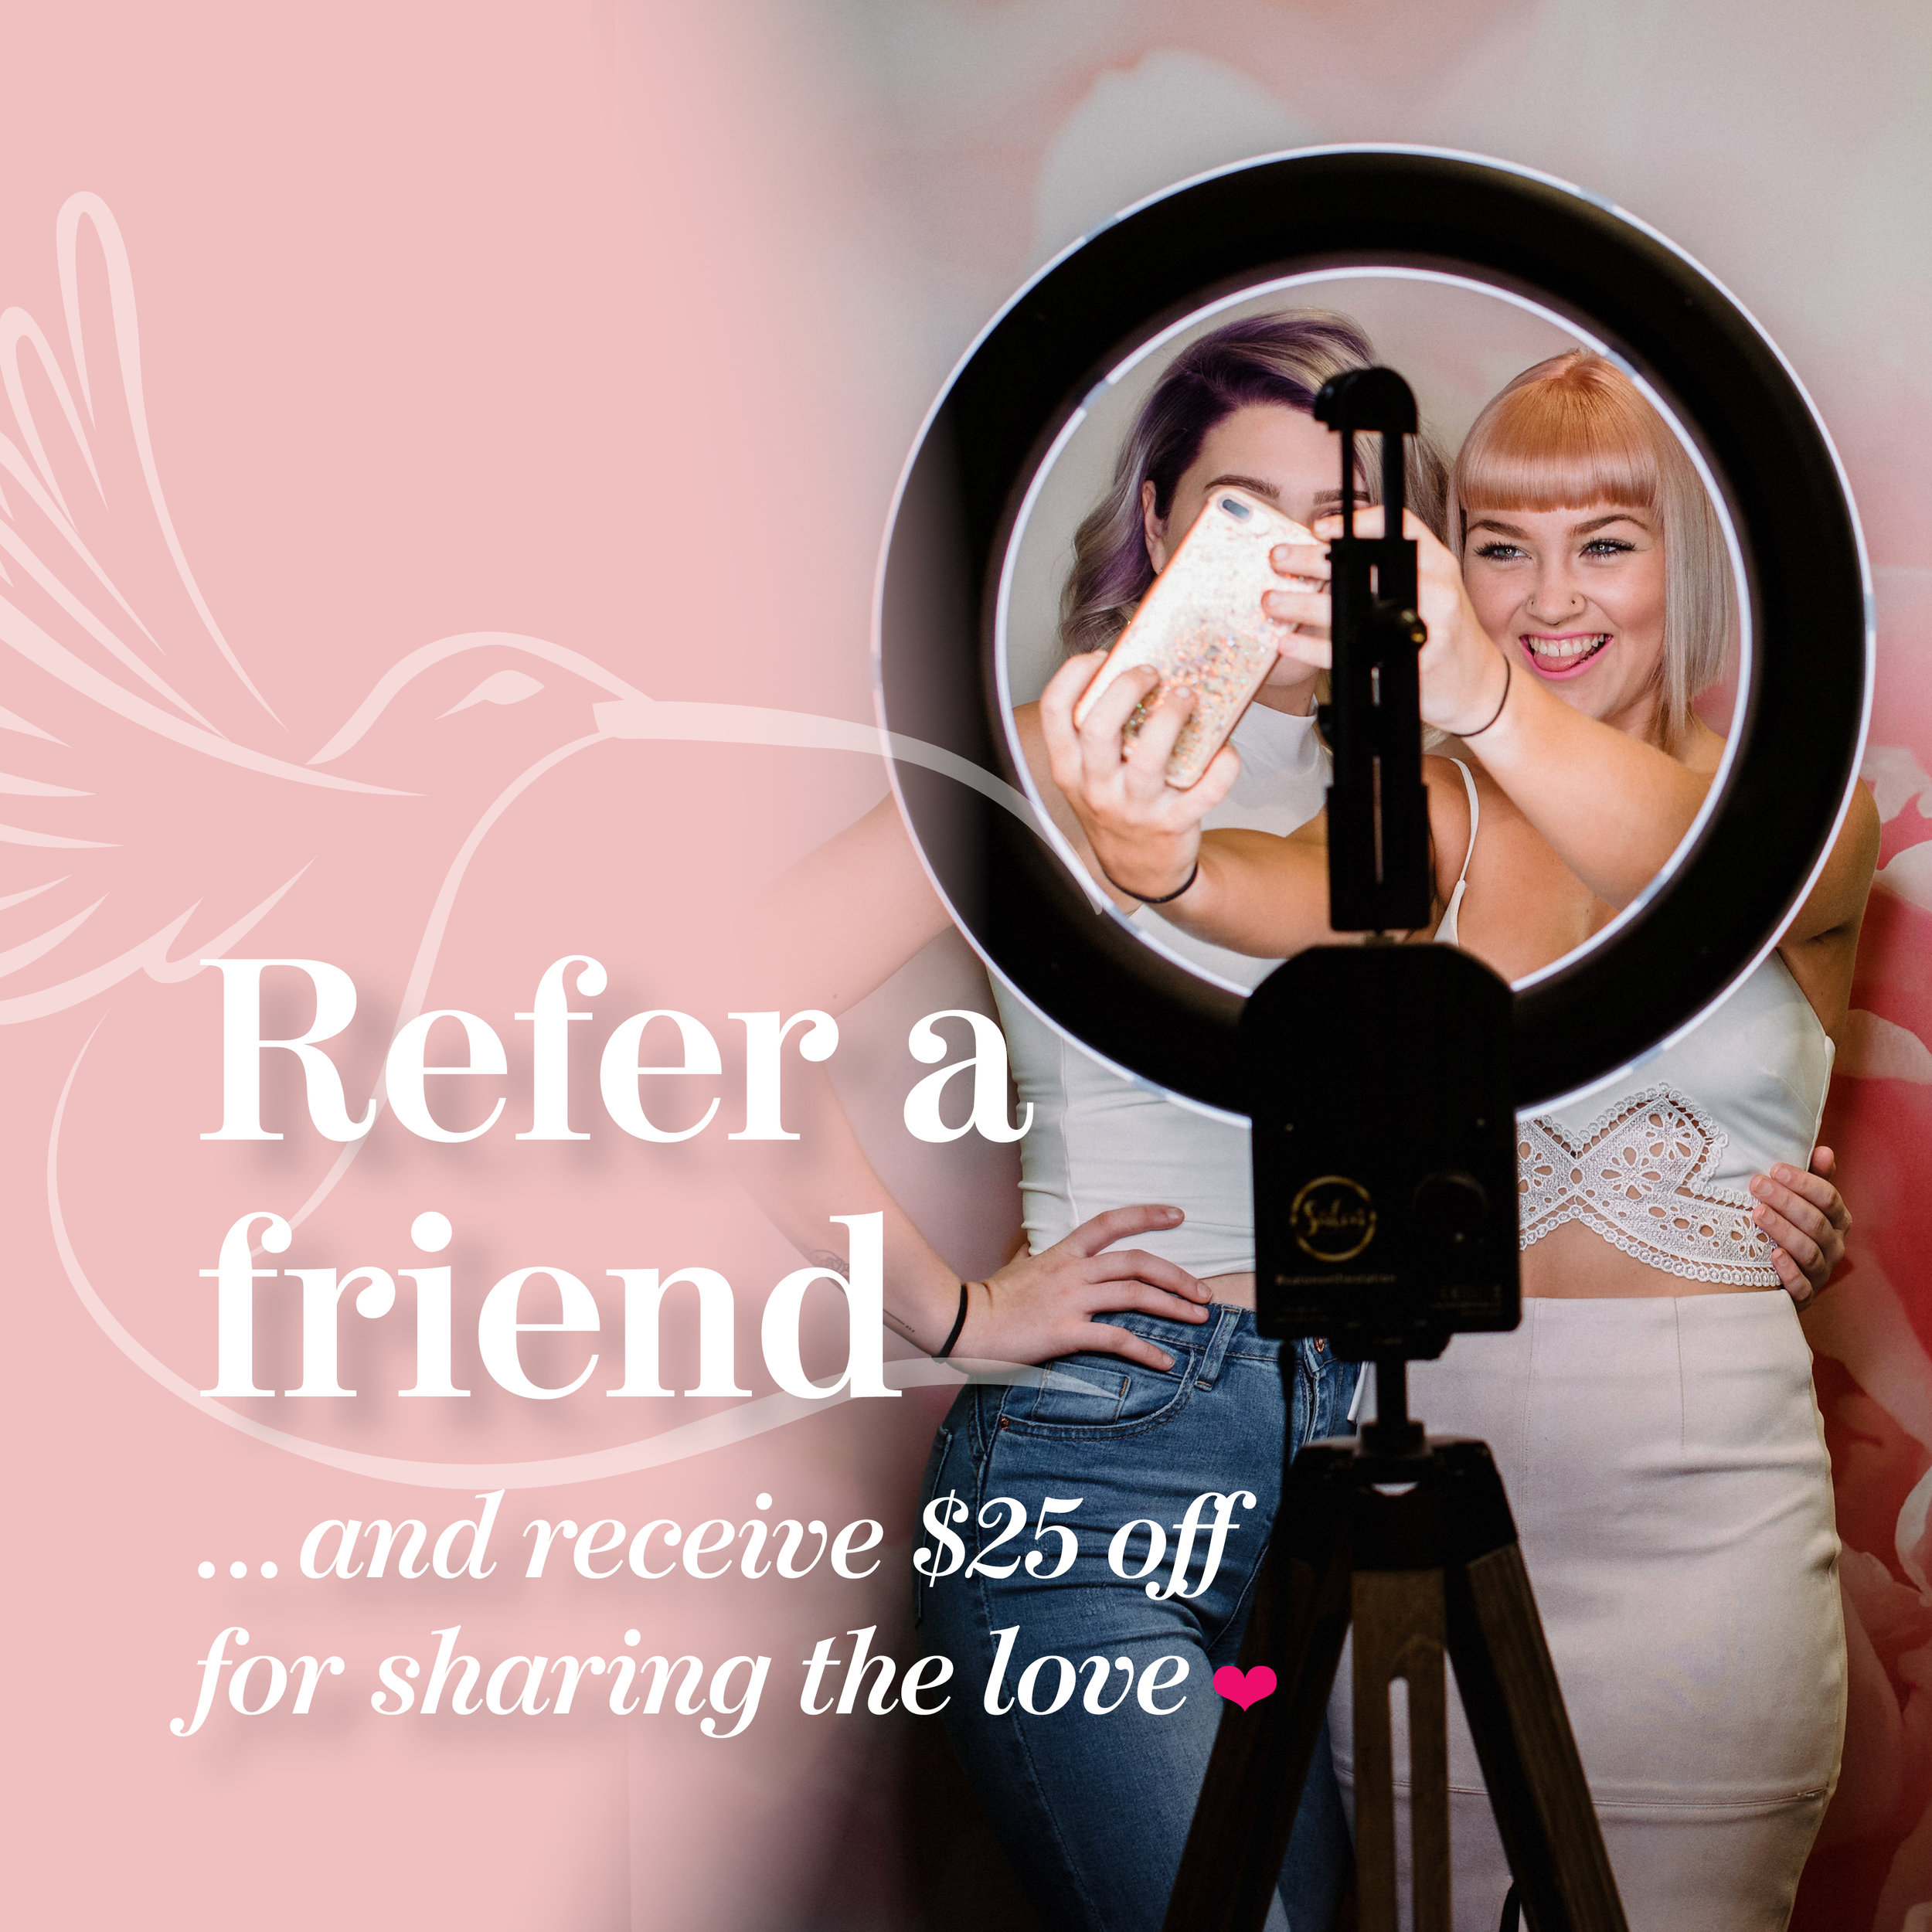 Referral Program - The best compliment you can give us is a referral to loved ones and friends. When they arrive for their appointment, all they need to do is to let us know who referred them.To thank YOU for your referral and sharing the love for our salon, we'd love to give you $25 off your next visit to our salon as a token of our appreciation.